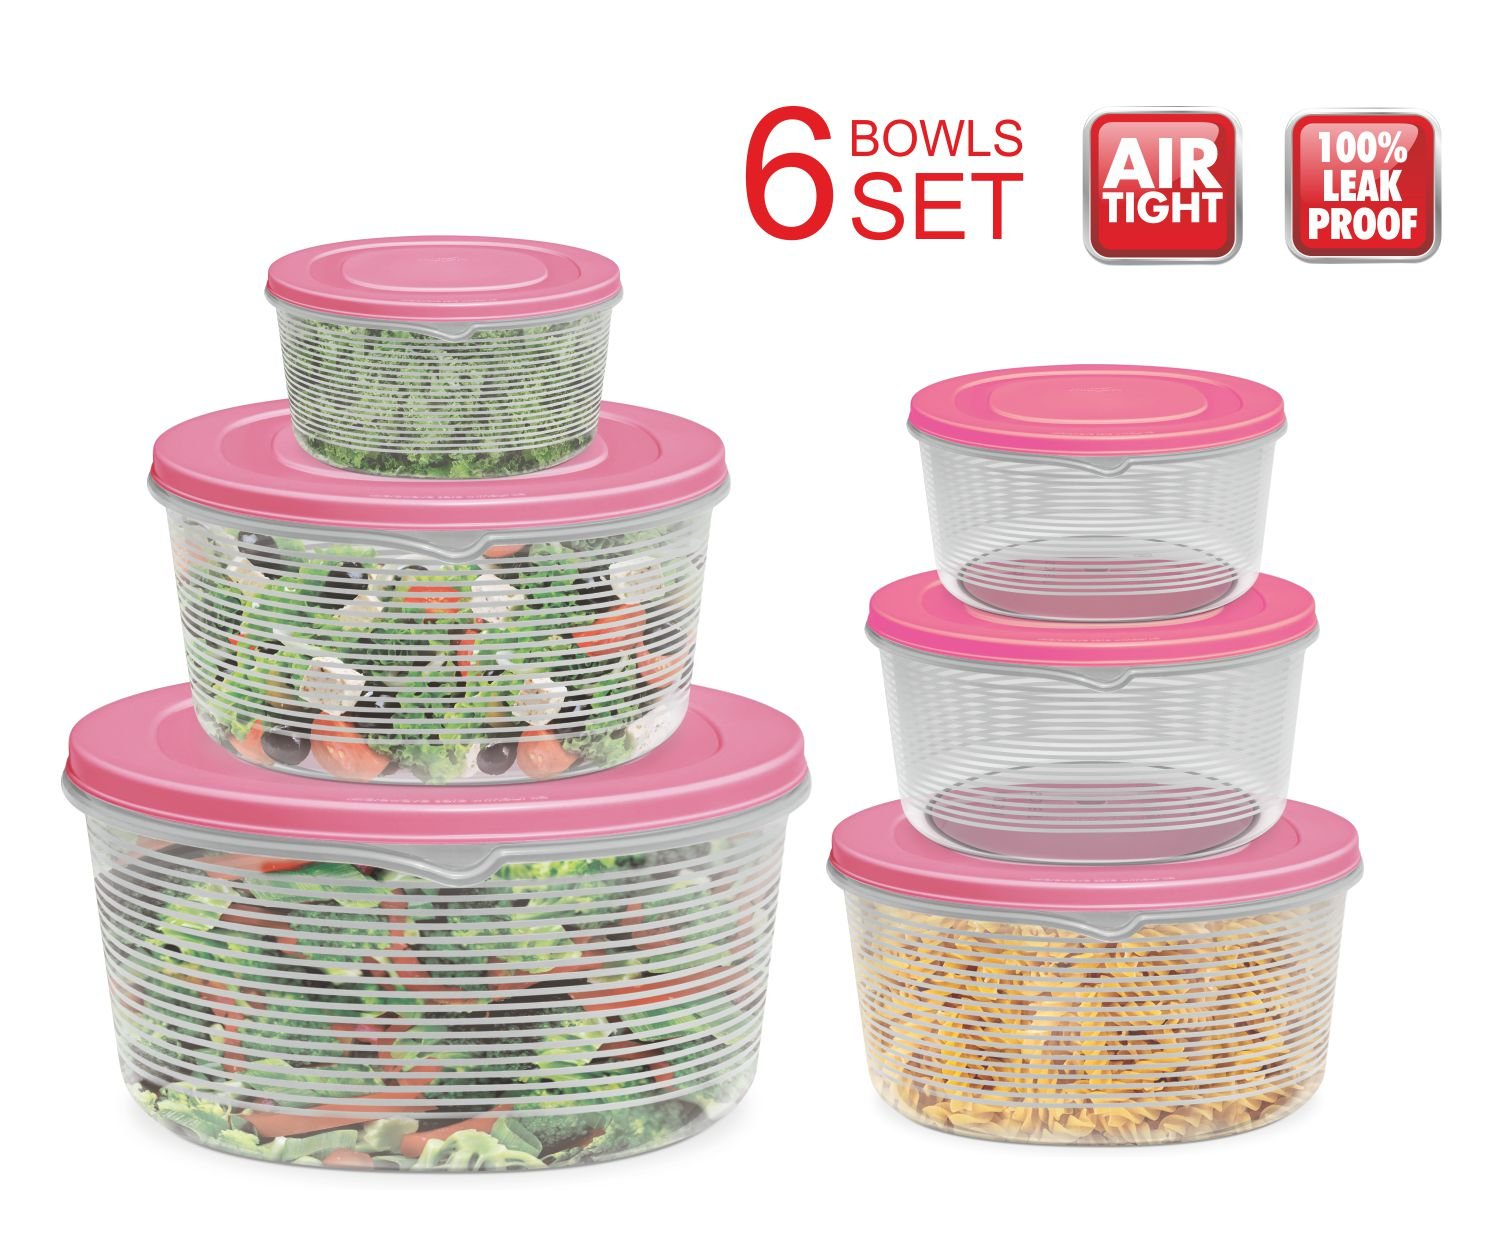 Mixing Bowl Set with Lids Kitchen Food Storage Containers Plastic